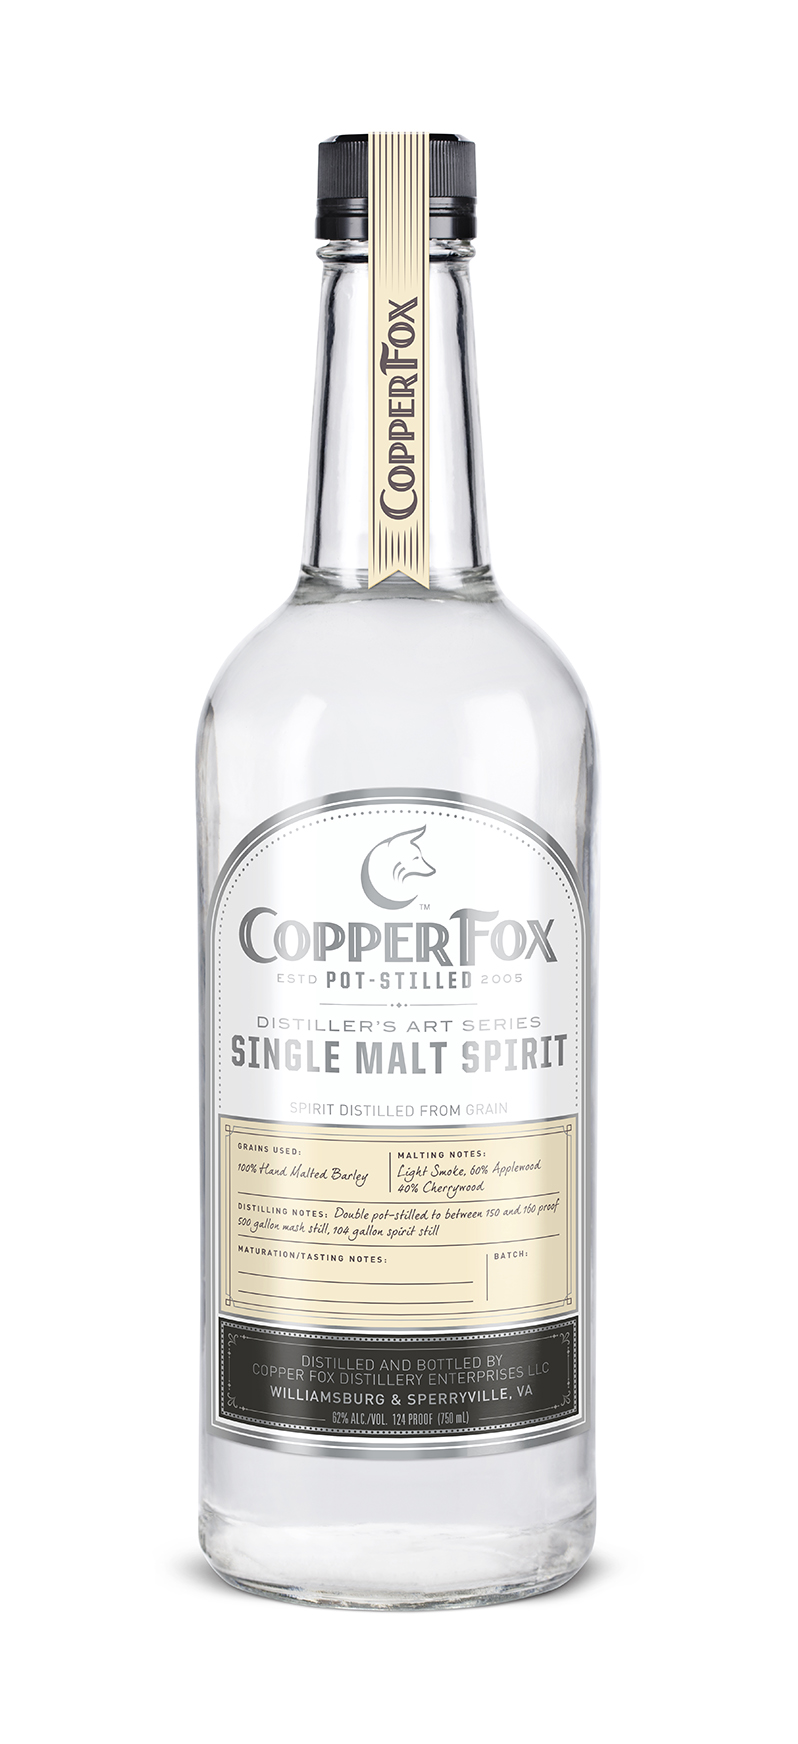 "COPPER FOX SINGLE MALT SPIRIT - The first born in our ""Distiller's Art Series"" this clear spirit is our Gold Medal award winning Copper Fox Single Malt Whisky, bottled at barrel strength prior to aging. Our spirit is hand crafted from 100% Thoroughbred barley developed and grown locally, exclusively for Copper Fox Distillery.Unlike neutral grain spirits, which are distilled at 190 proof and above, our spirits are hand crafted and carefully distilled at just under 160 proof, utilizing a process which allows the complete essence and flavor of the barley grain to come throughEnjoy this Single Malt Spirit as a foundation for creating marvelous cocktails; substituting it for many other spirits in your favorite recipes. In addition, we invite you to replicate the aging process at home in our new lightly charred American white oak barrels. The cask strength (124 proof) spirit is the best strength to optimize the reaction of spirit and wood.The first bite of a crisp, ripe apple with a hint of toasted almond. Silky finish somewhere between subtle vanilla and licorice fade. A tantalizing bouquet and surprisingly full flavored.‹ PreviousBack to GalleryNext ›"